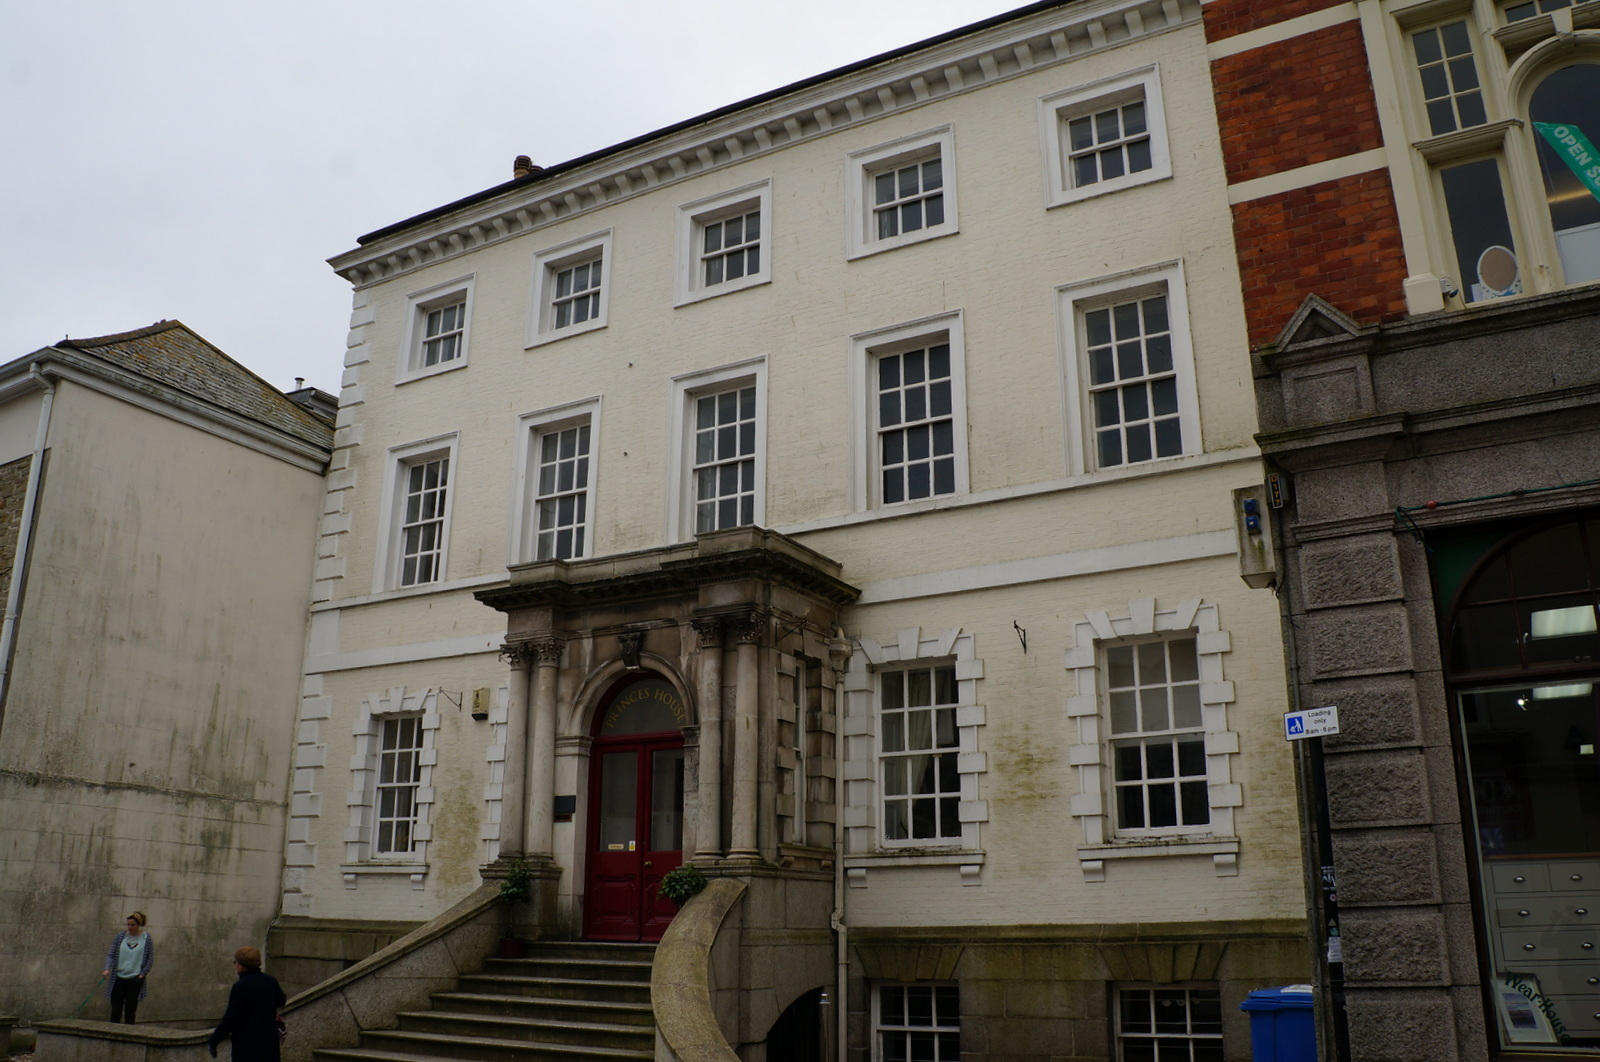 File:Princes House, Truro Geograph 4430632 By Ian S.